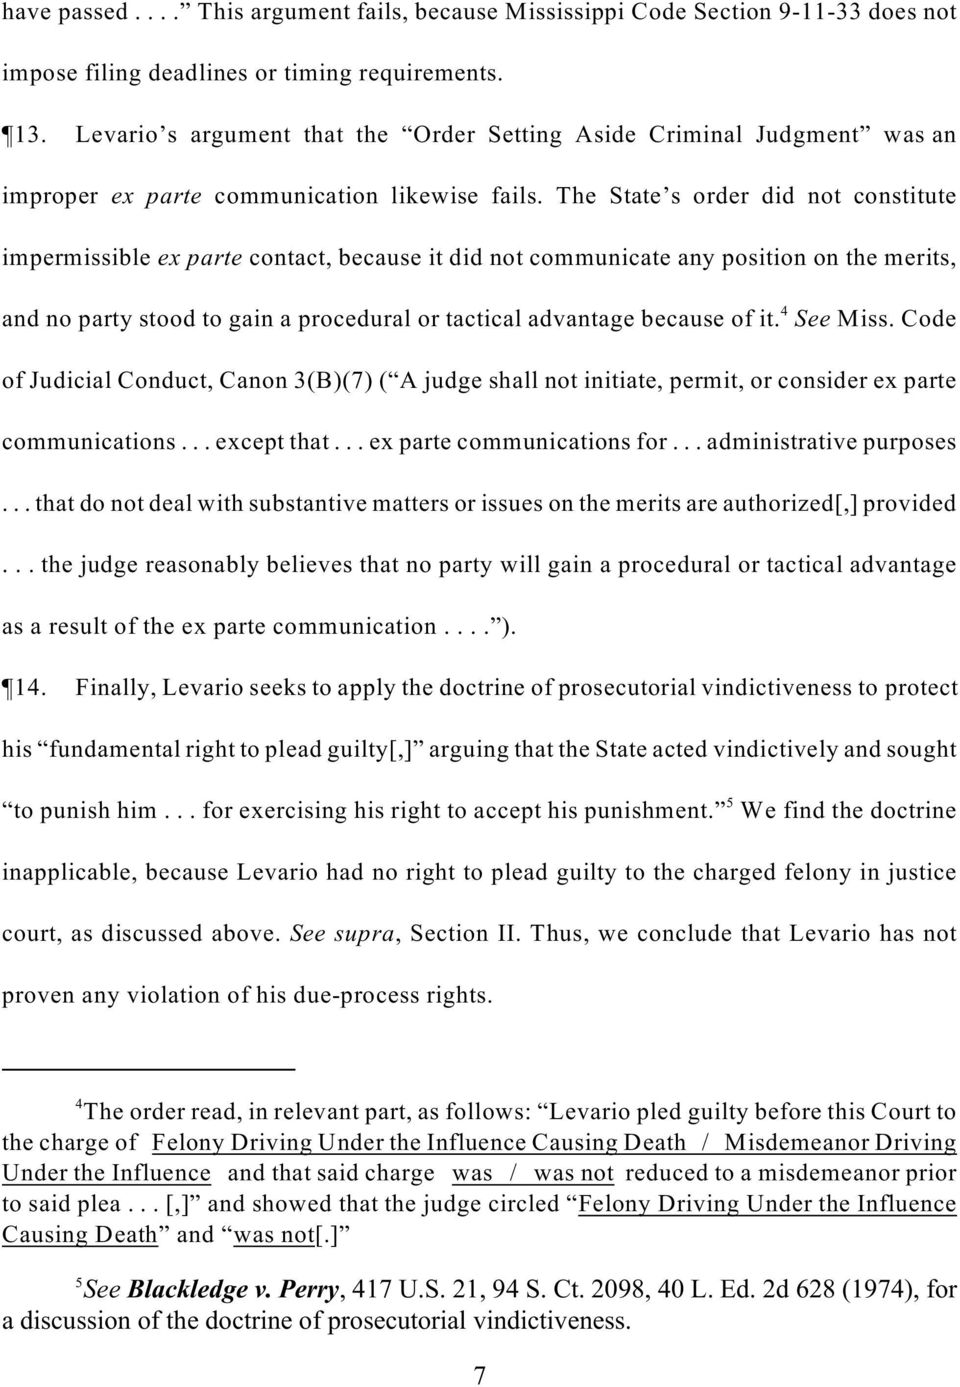 The State s order did not constitute impermissible ex parte contact, because it did not communicate any position on the merits, 4 and no party stood to gain a procedural or tactical advantage because